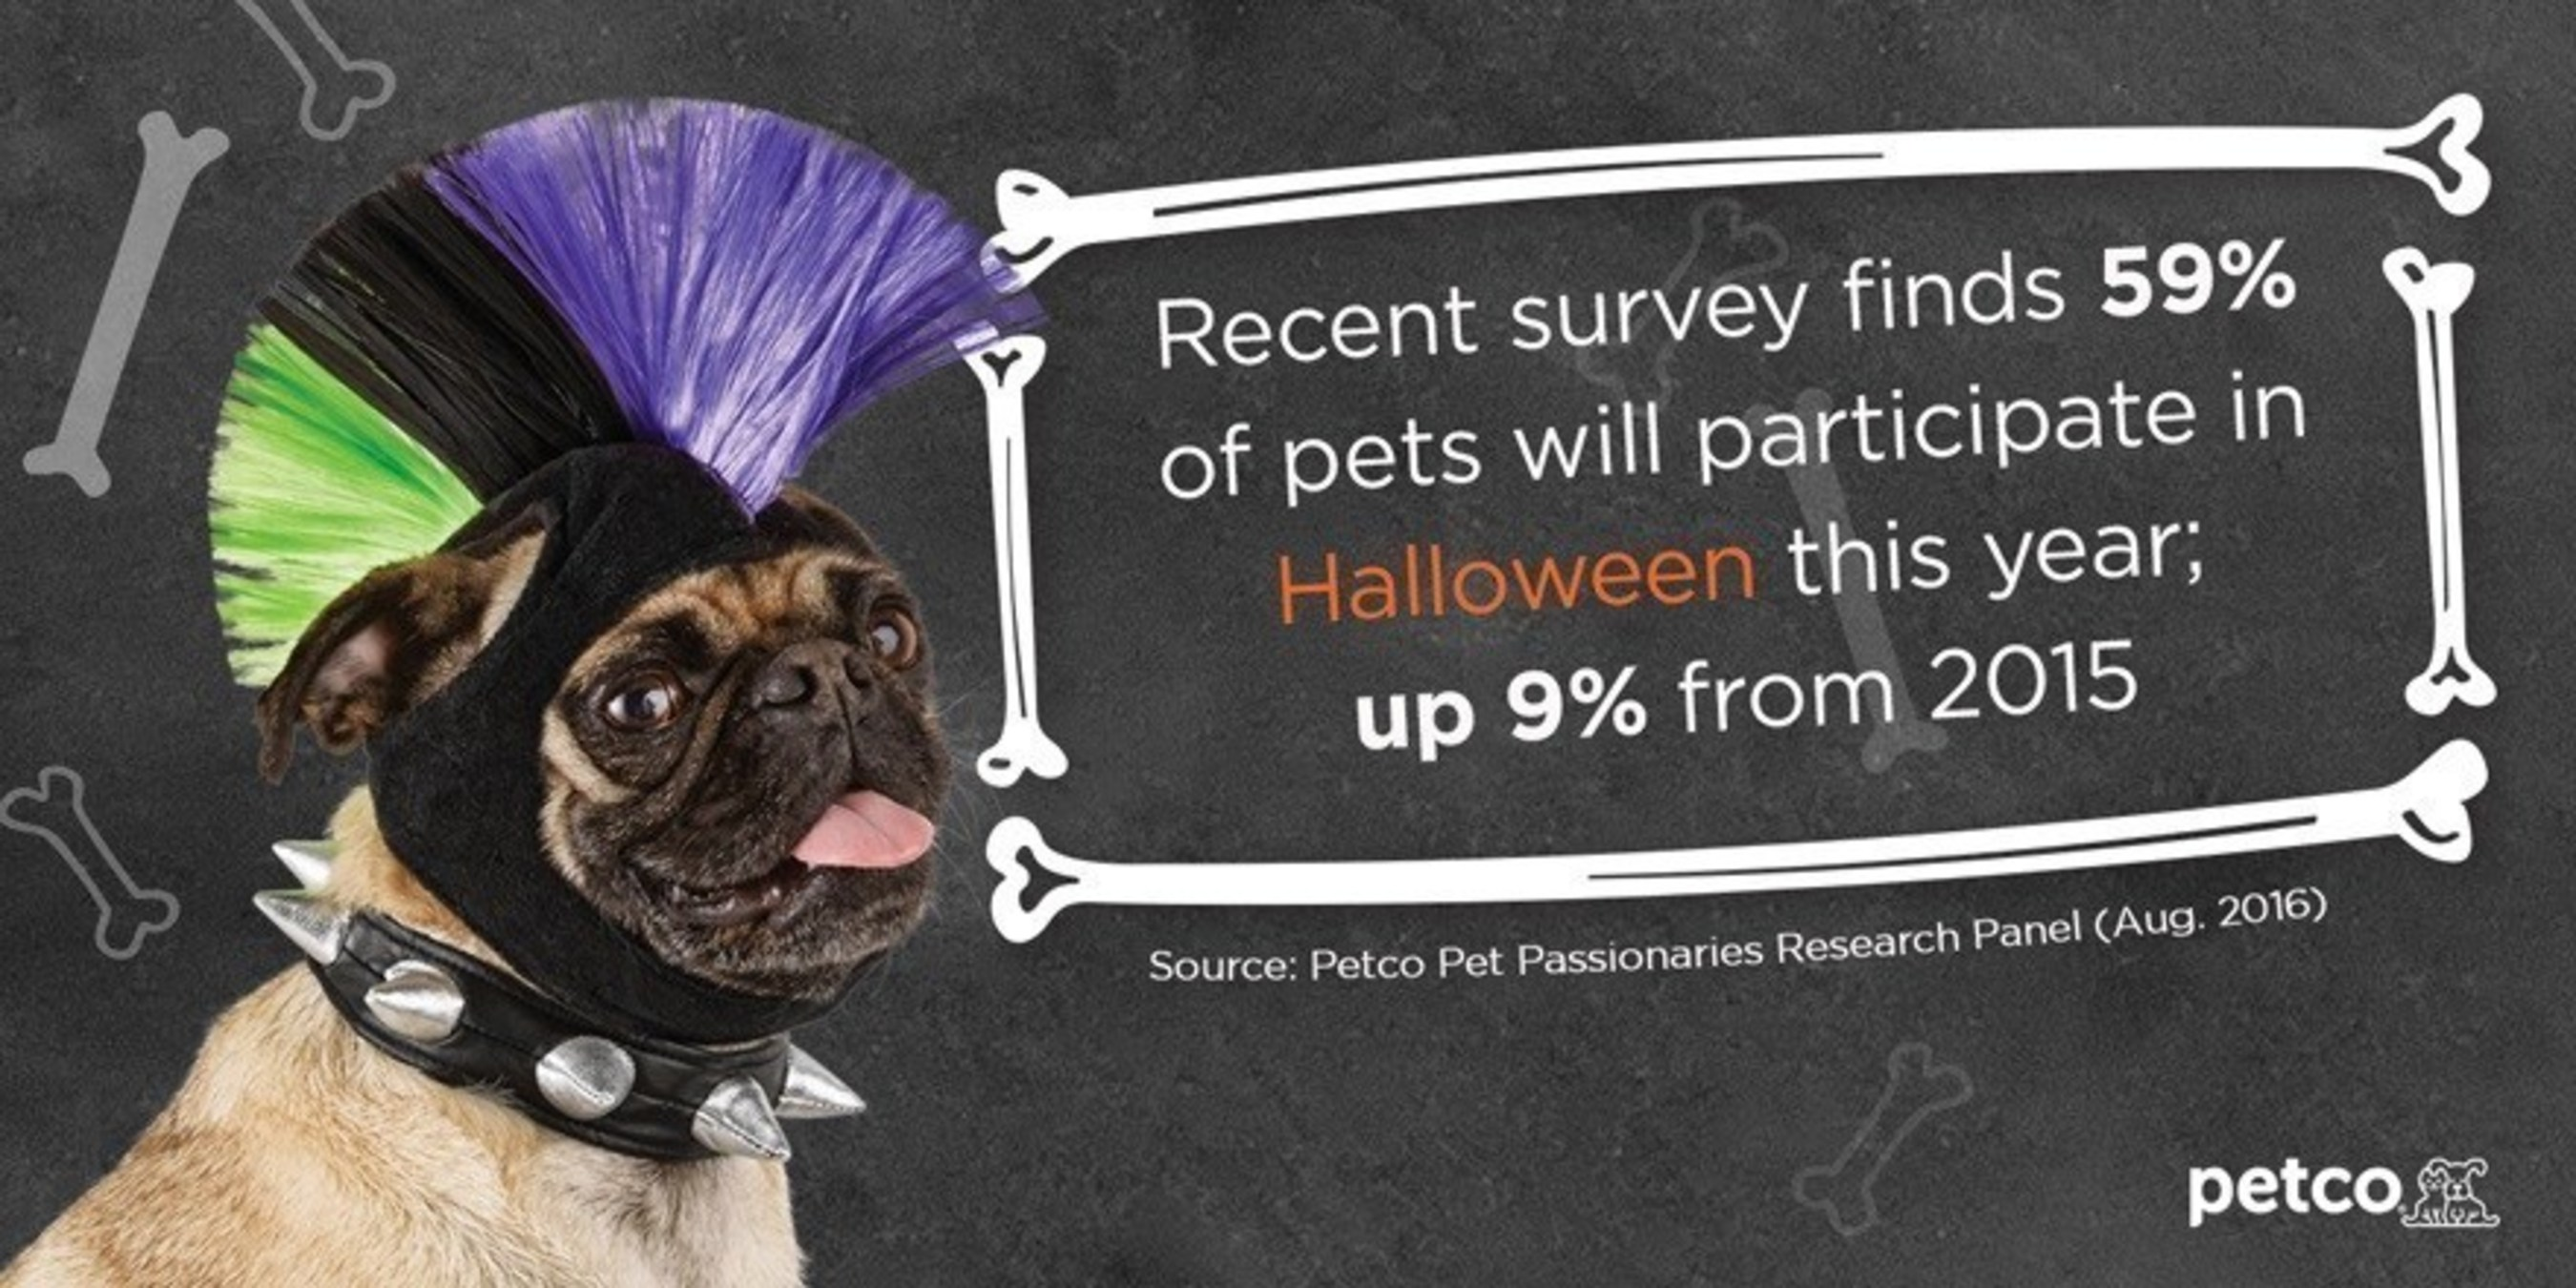 According to a recent Petco survey*, 59 percent of pet parents say their pet will participate in Halloween this year, a 9 percent increase from 2015